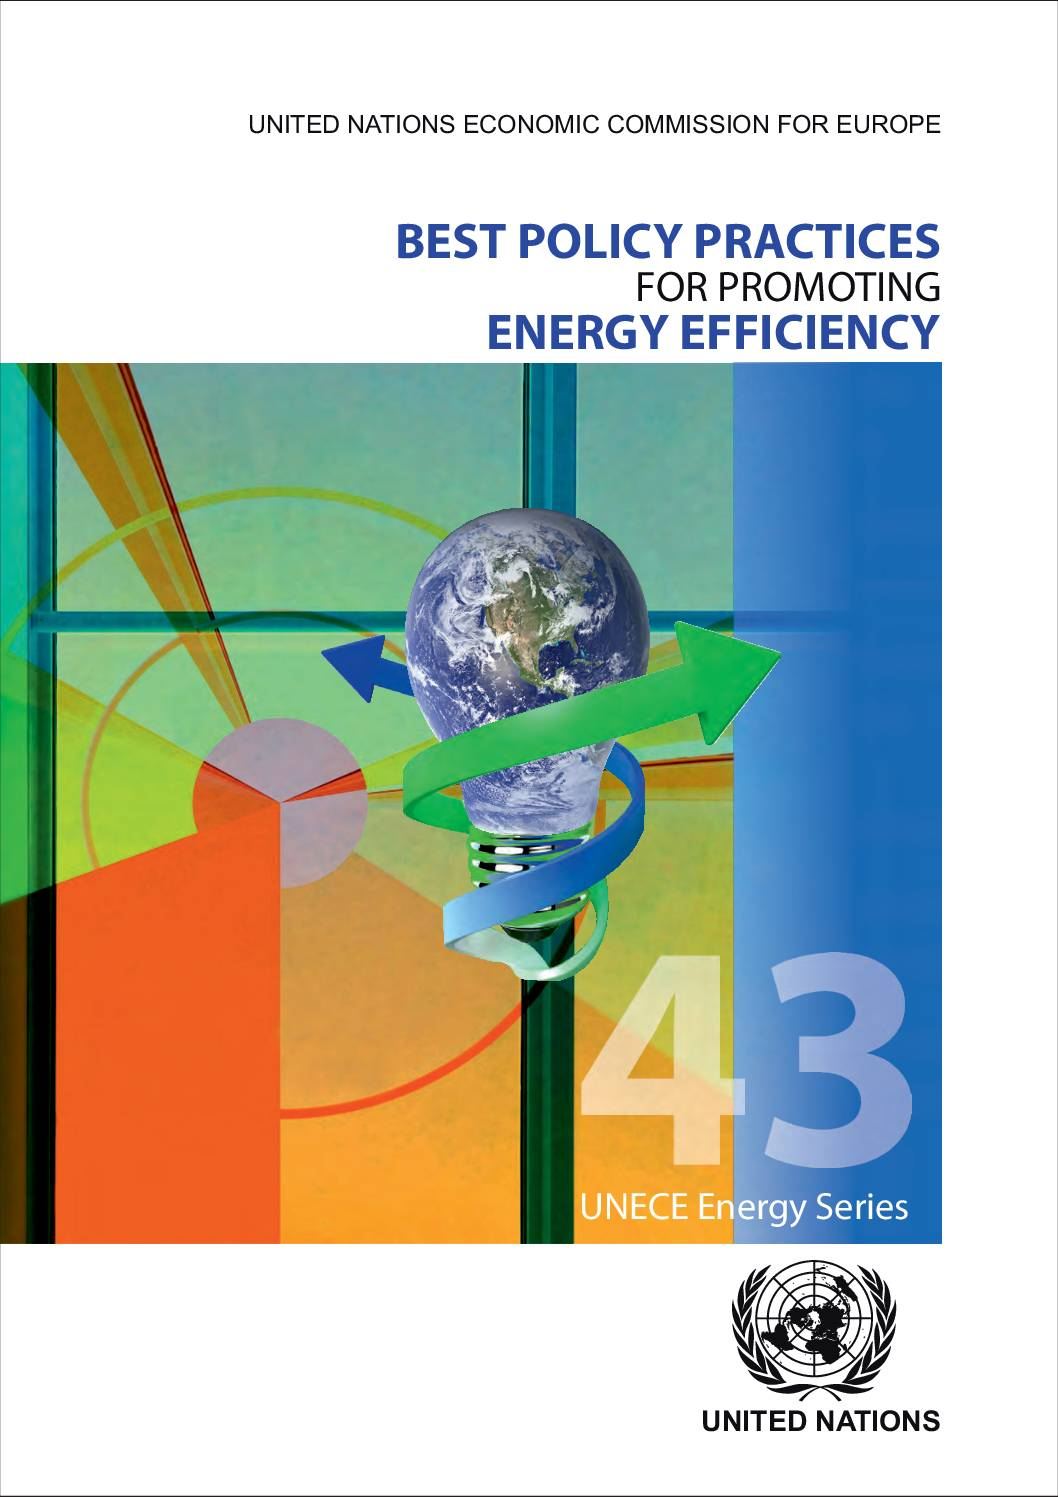 Best Policy Practices for Promoting Energy Efficiency – A Structured Framework of Best Practices in Policies to Promote Energy Efficiency for Climate Change Mitigation and Sustainable Development